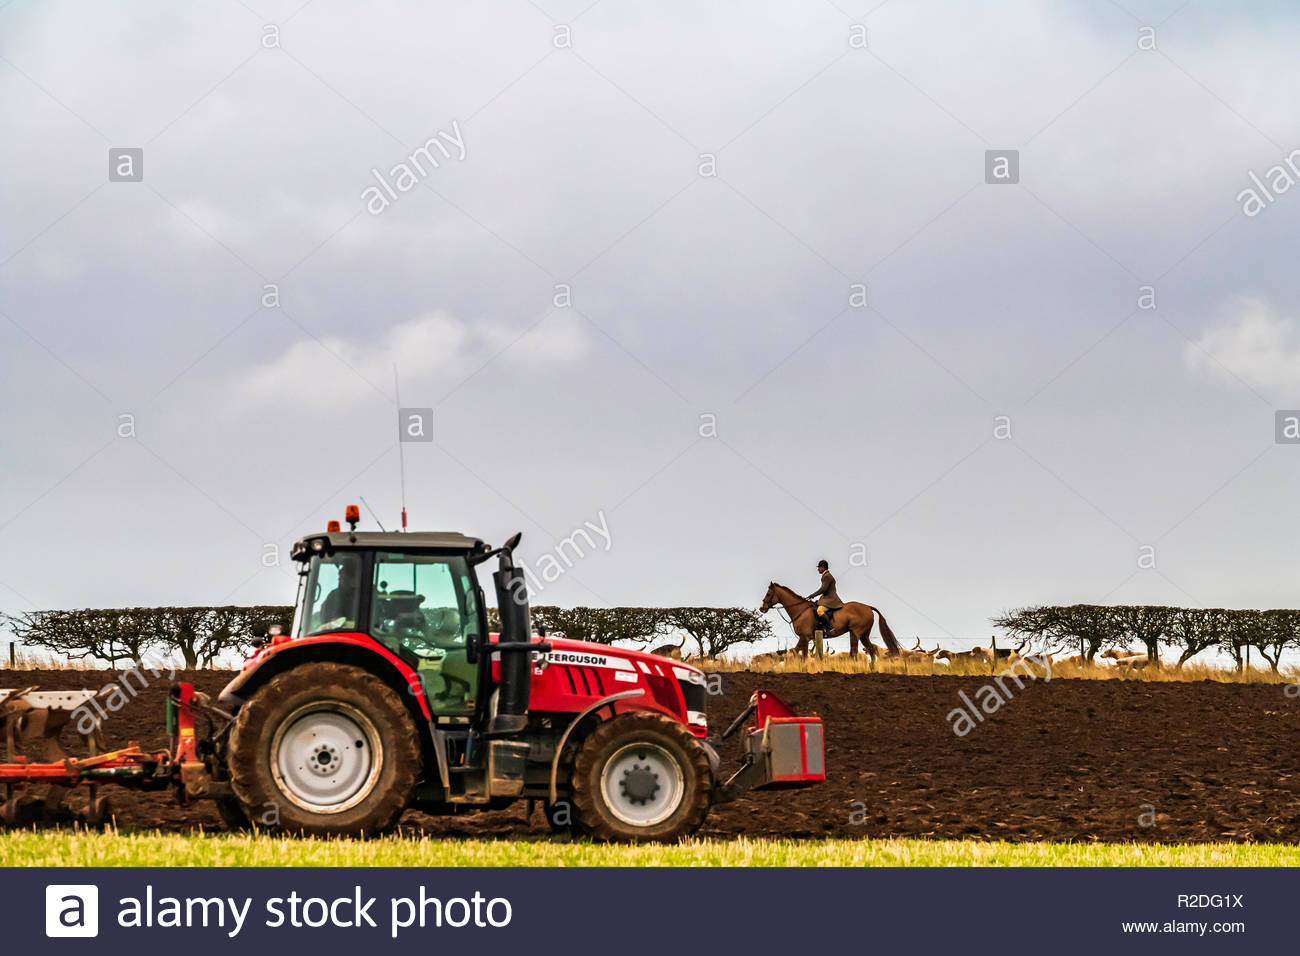 Smailholm, Kelso, Scottish Borders, UK. 19th November 2018. The Duke of Buccleuch foxhounds trot up a hedgerow as a farmer ploughs a field on an overcast day in the Borders. Credit: Chris Strickland / Alamy Live News Stock Photo